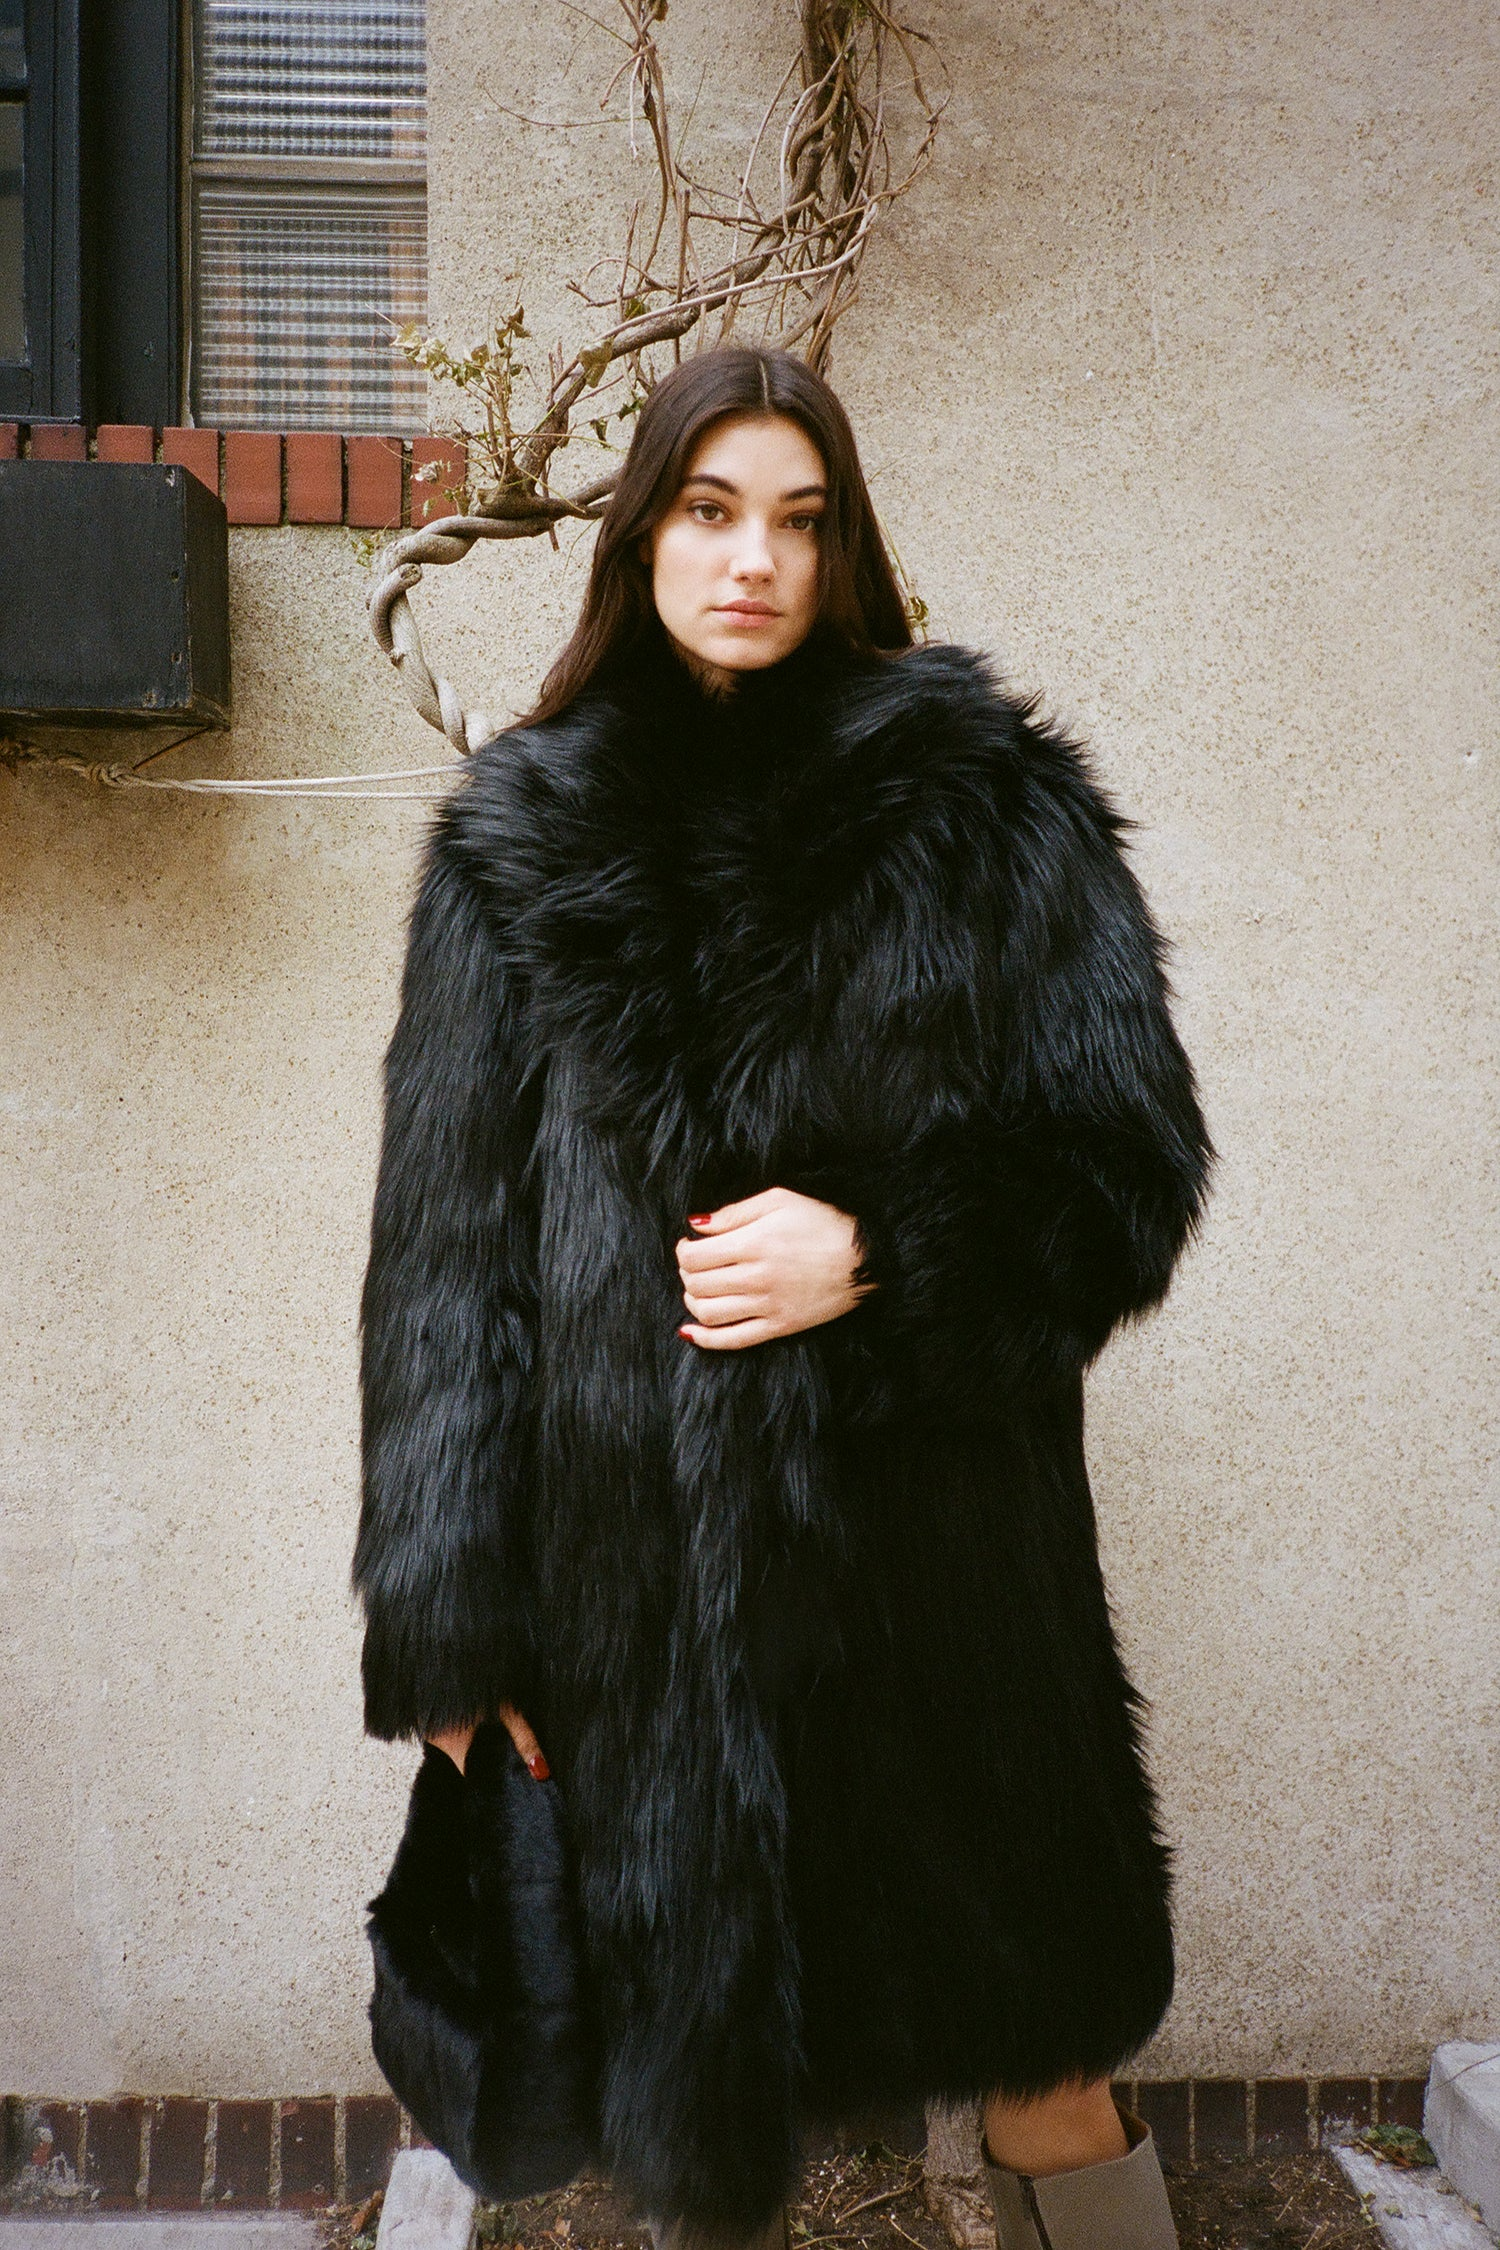 Marei1998's Datura Long Faux Fur Coat In Black Color. Featuring A Slight A-Lined Silhouette, It Is Made From The Fluffiest Long Pile Faux Fur. Back View.